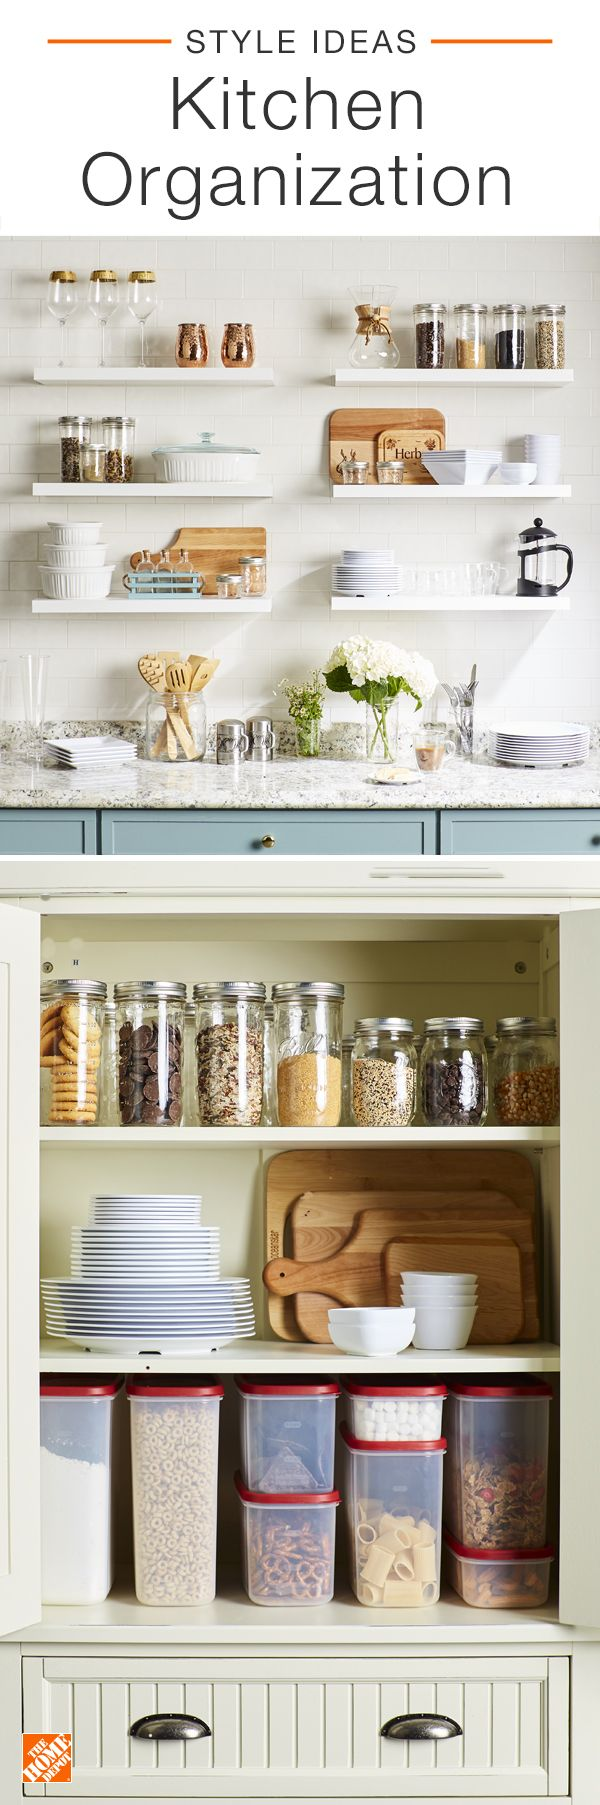 An organized kitchen is crucial for cooking at home and serving guests. Keep your ingredients and kitchenware easy to access with DIY storage solutions and open shelving. Find practical solutions that make your kitchen more efficient and look beautiful at the same time. Click to shop this chic, functional space.